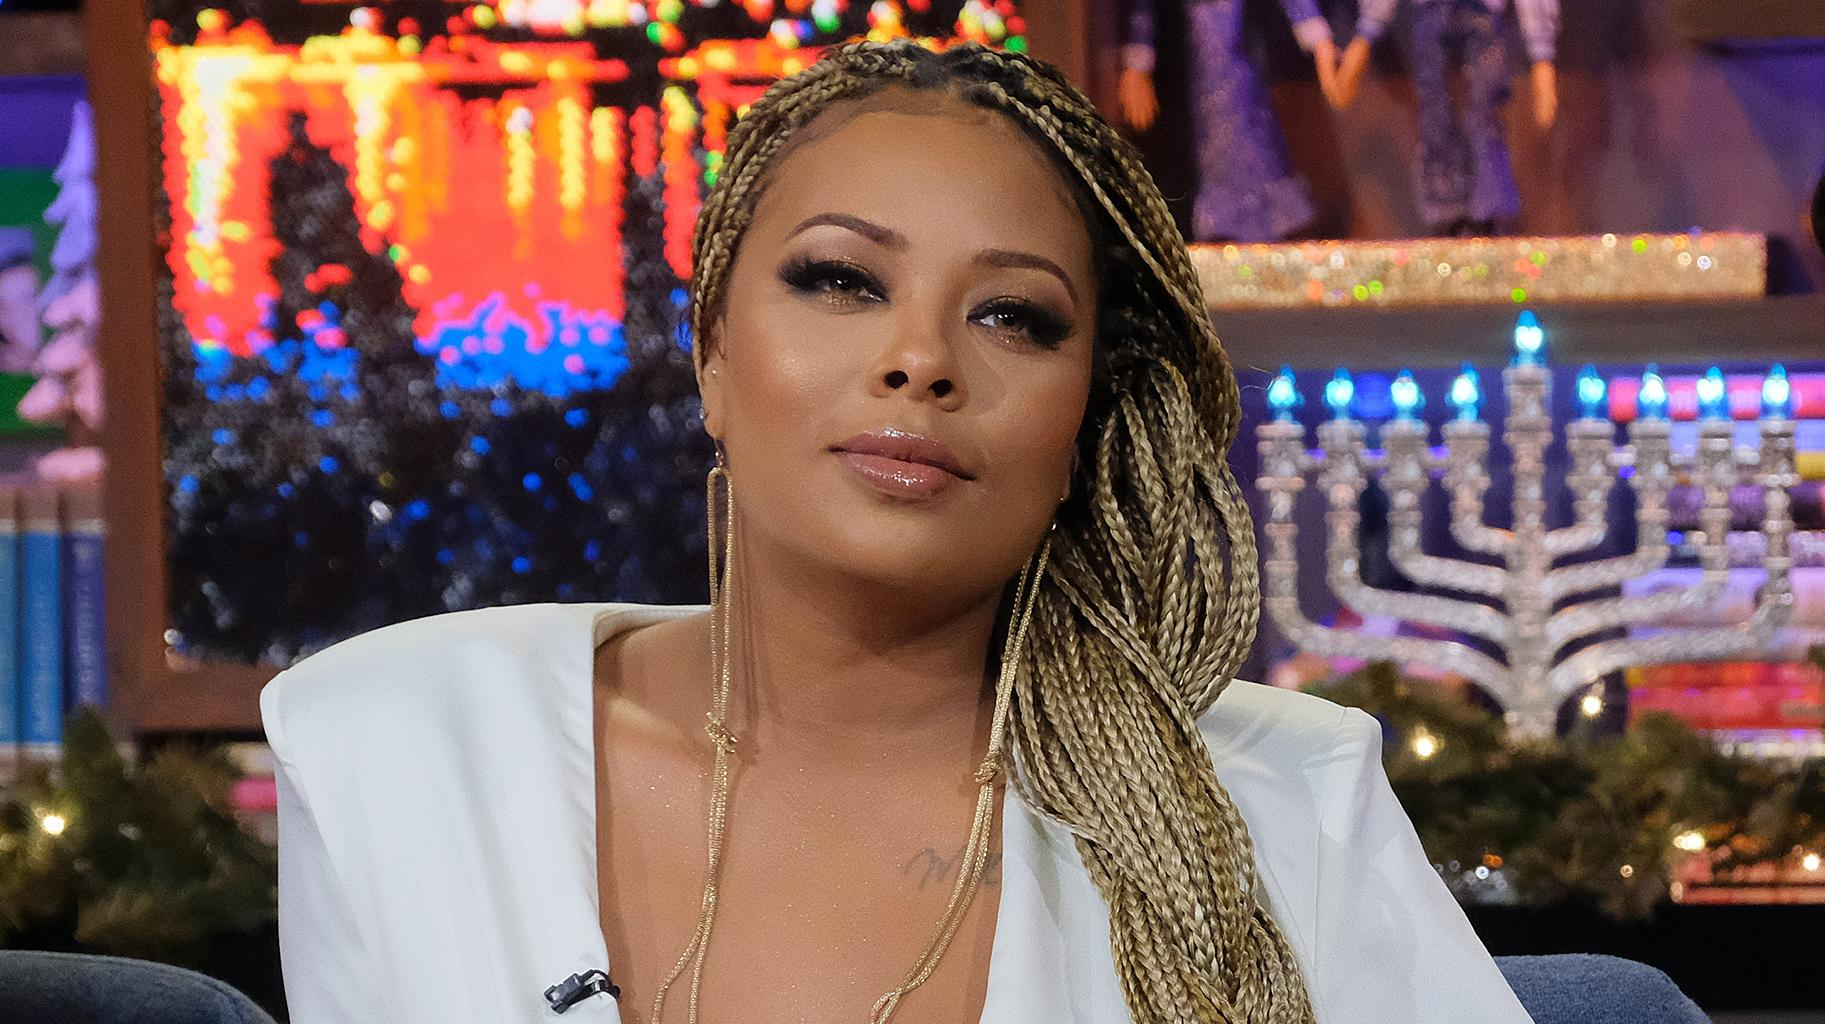 Eva Marcille Has The Best Time - Check Out Her Recent Pics